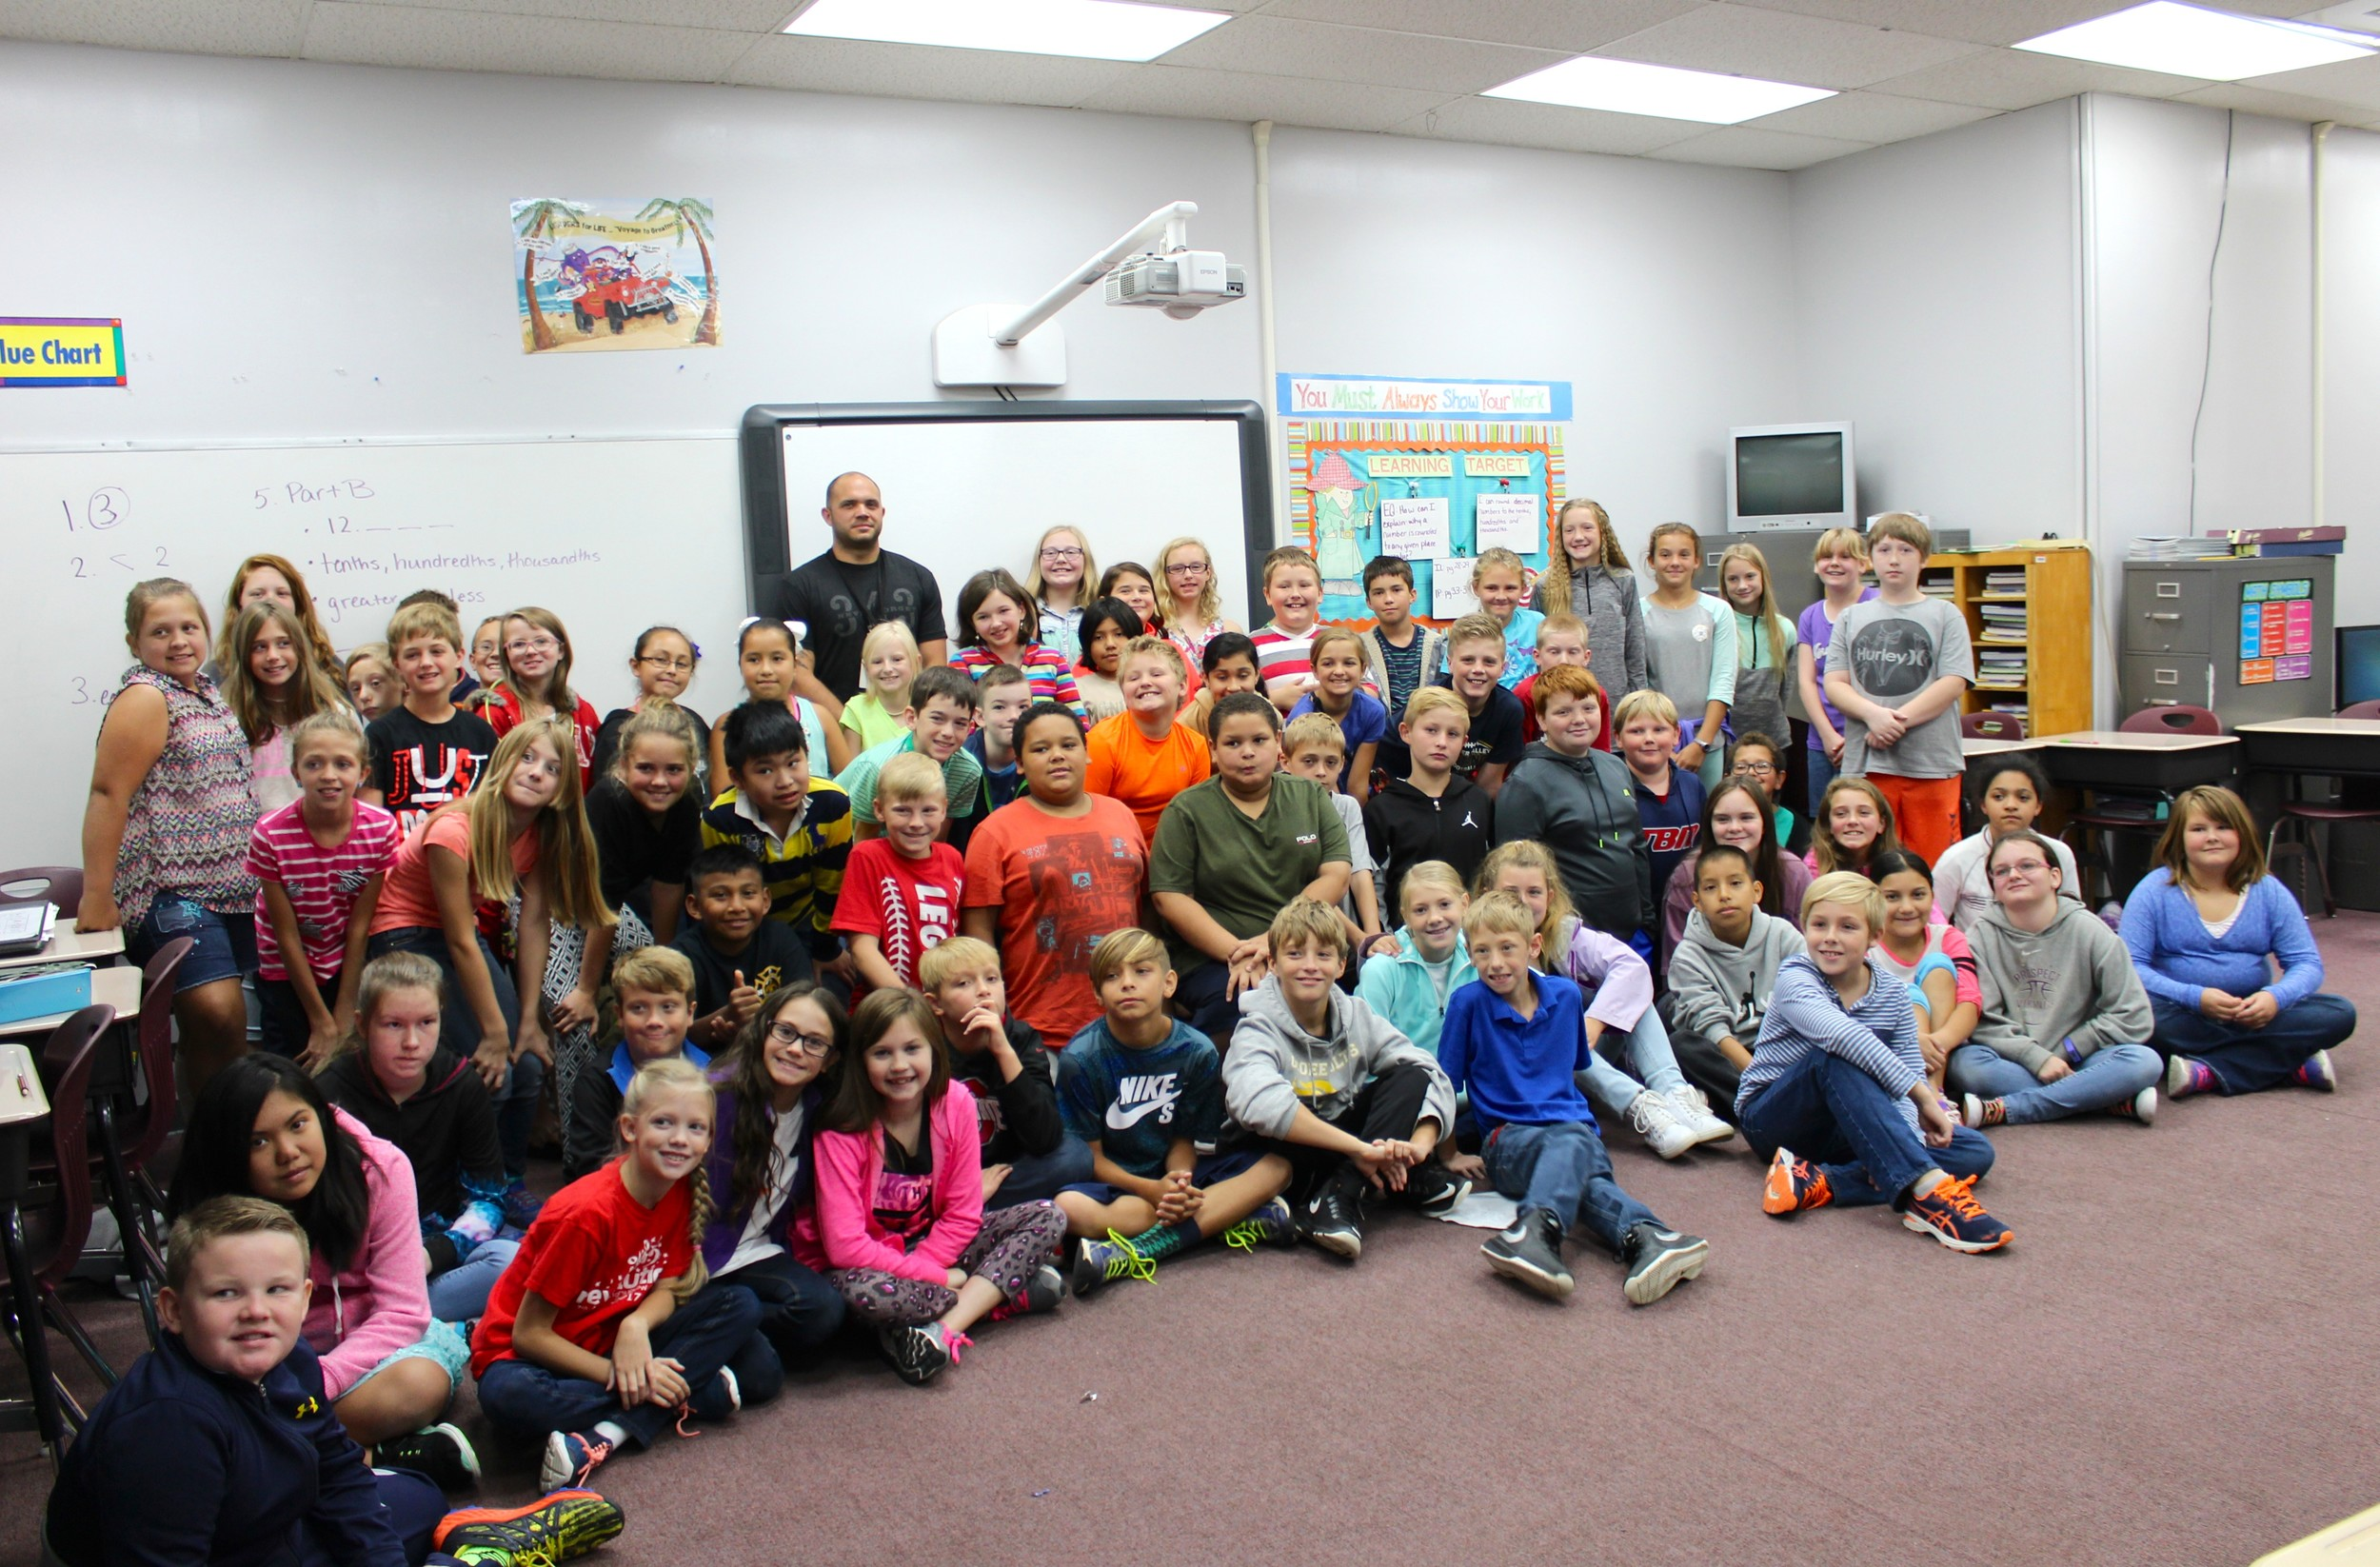 AARON HICKS, a local firefighter and EMT, joins a group of fifth-graders at Prospect Elementary School for a photo. He spoke to the students Monday about the sacrifices firefighters made while responding to the terrorist attacks on Sept. 11, 2001.